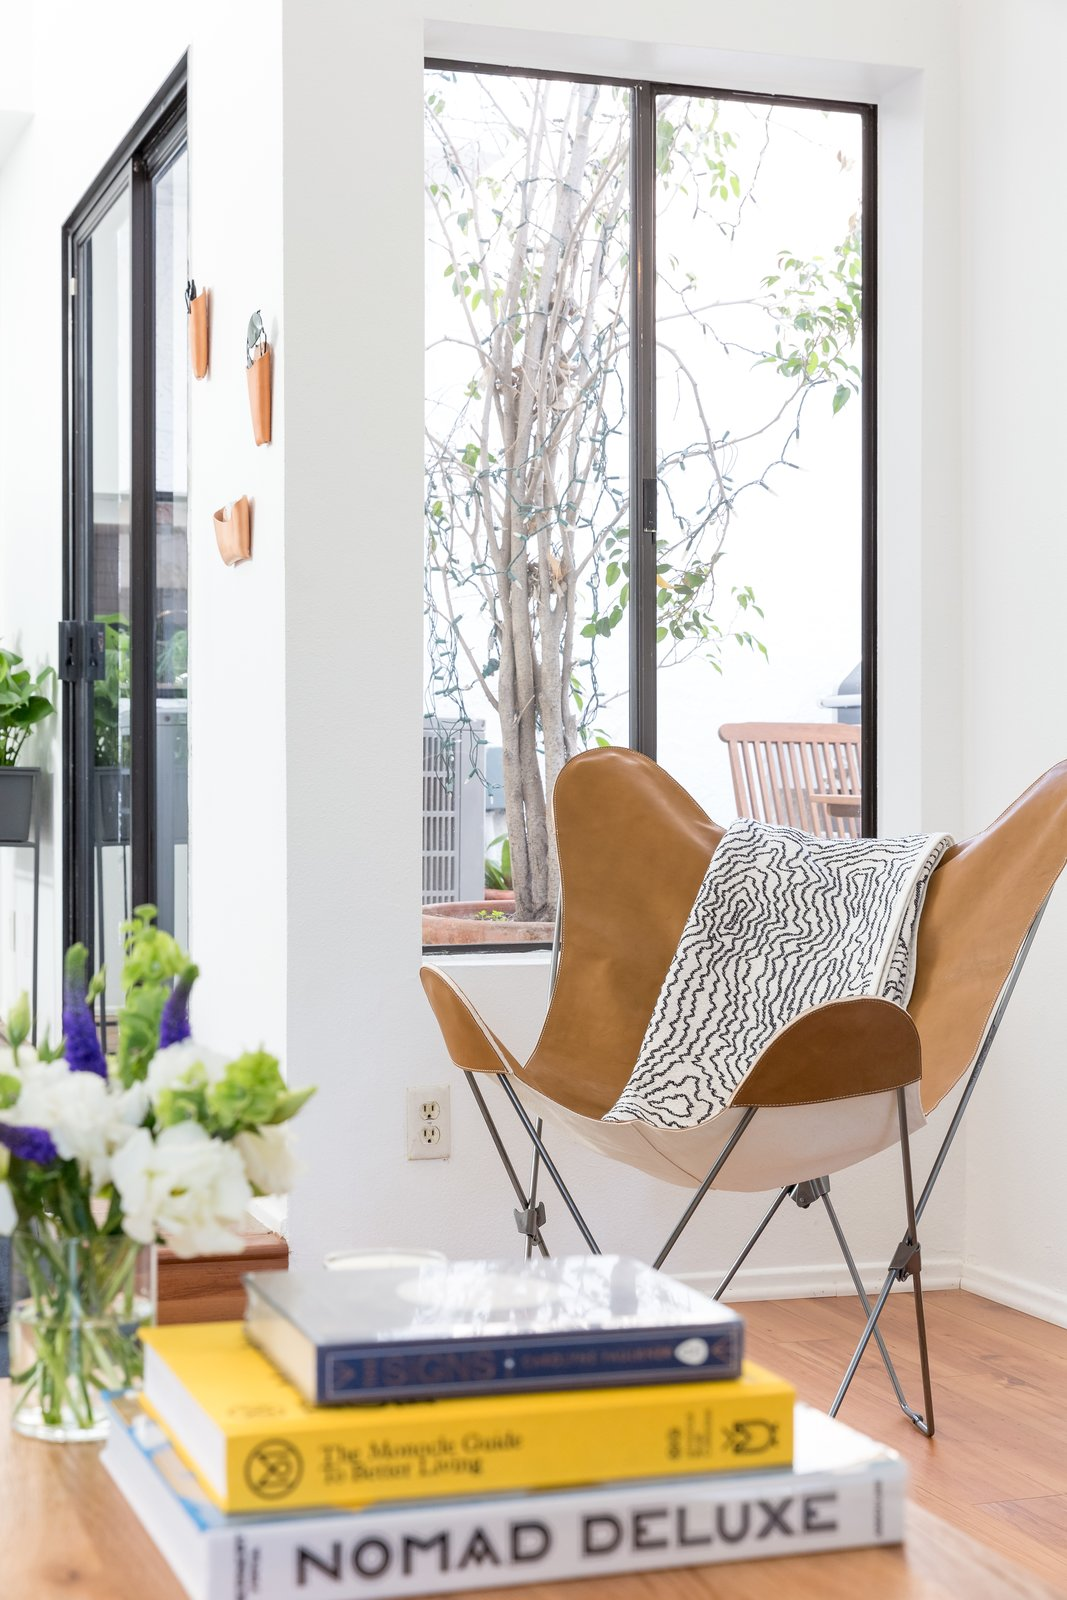 The butterfly chair in the living room was sourced from Urban Outfitters.